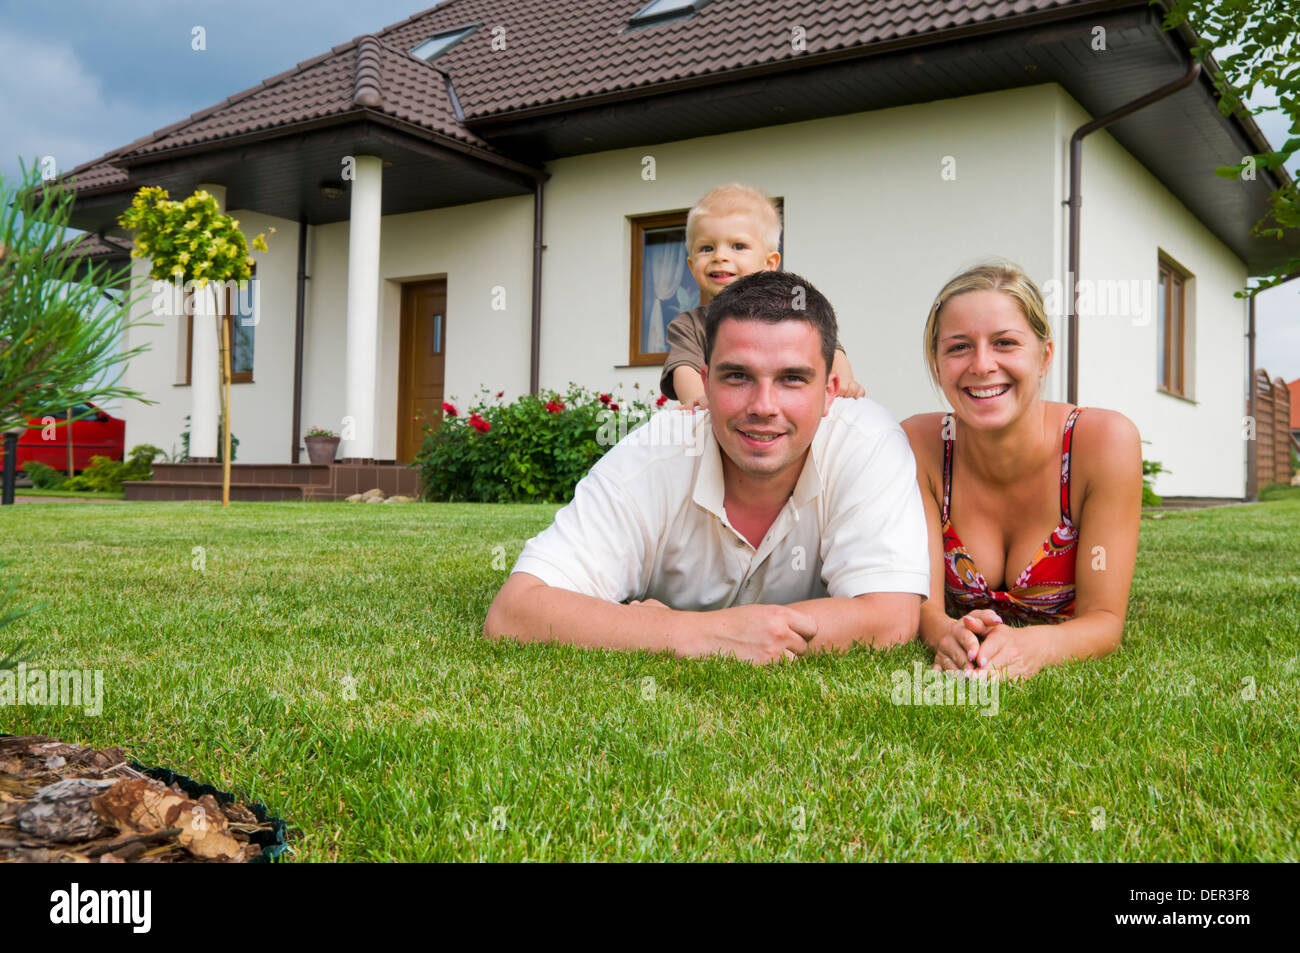 A happy family in front of their house in the garden Stock ...